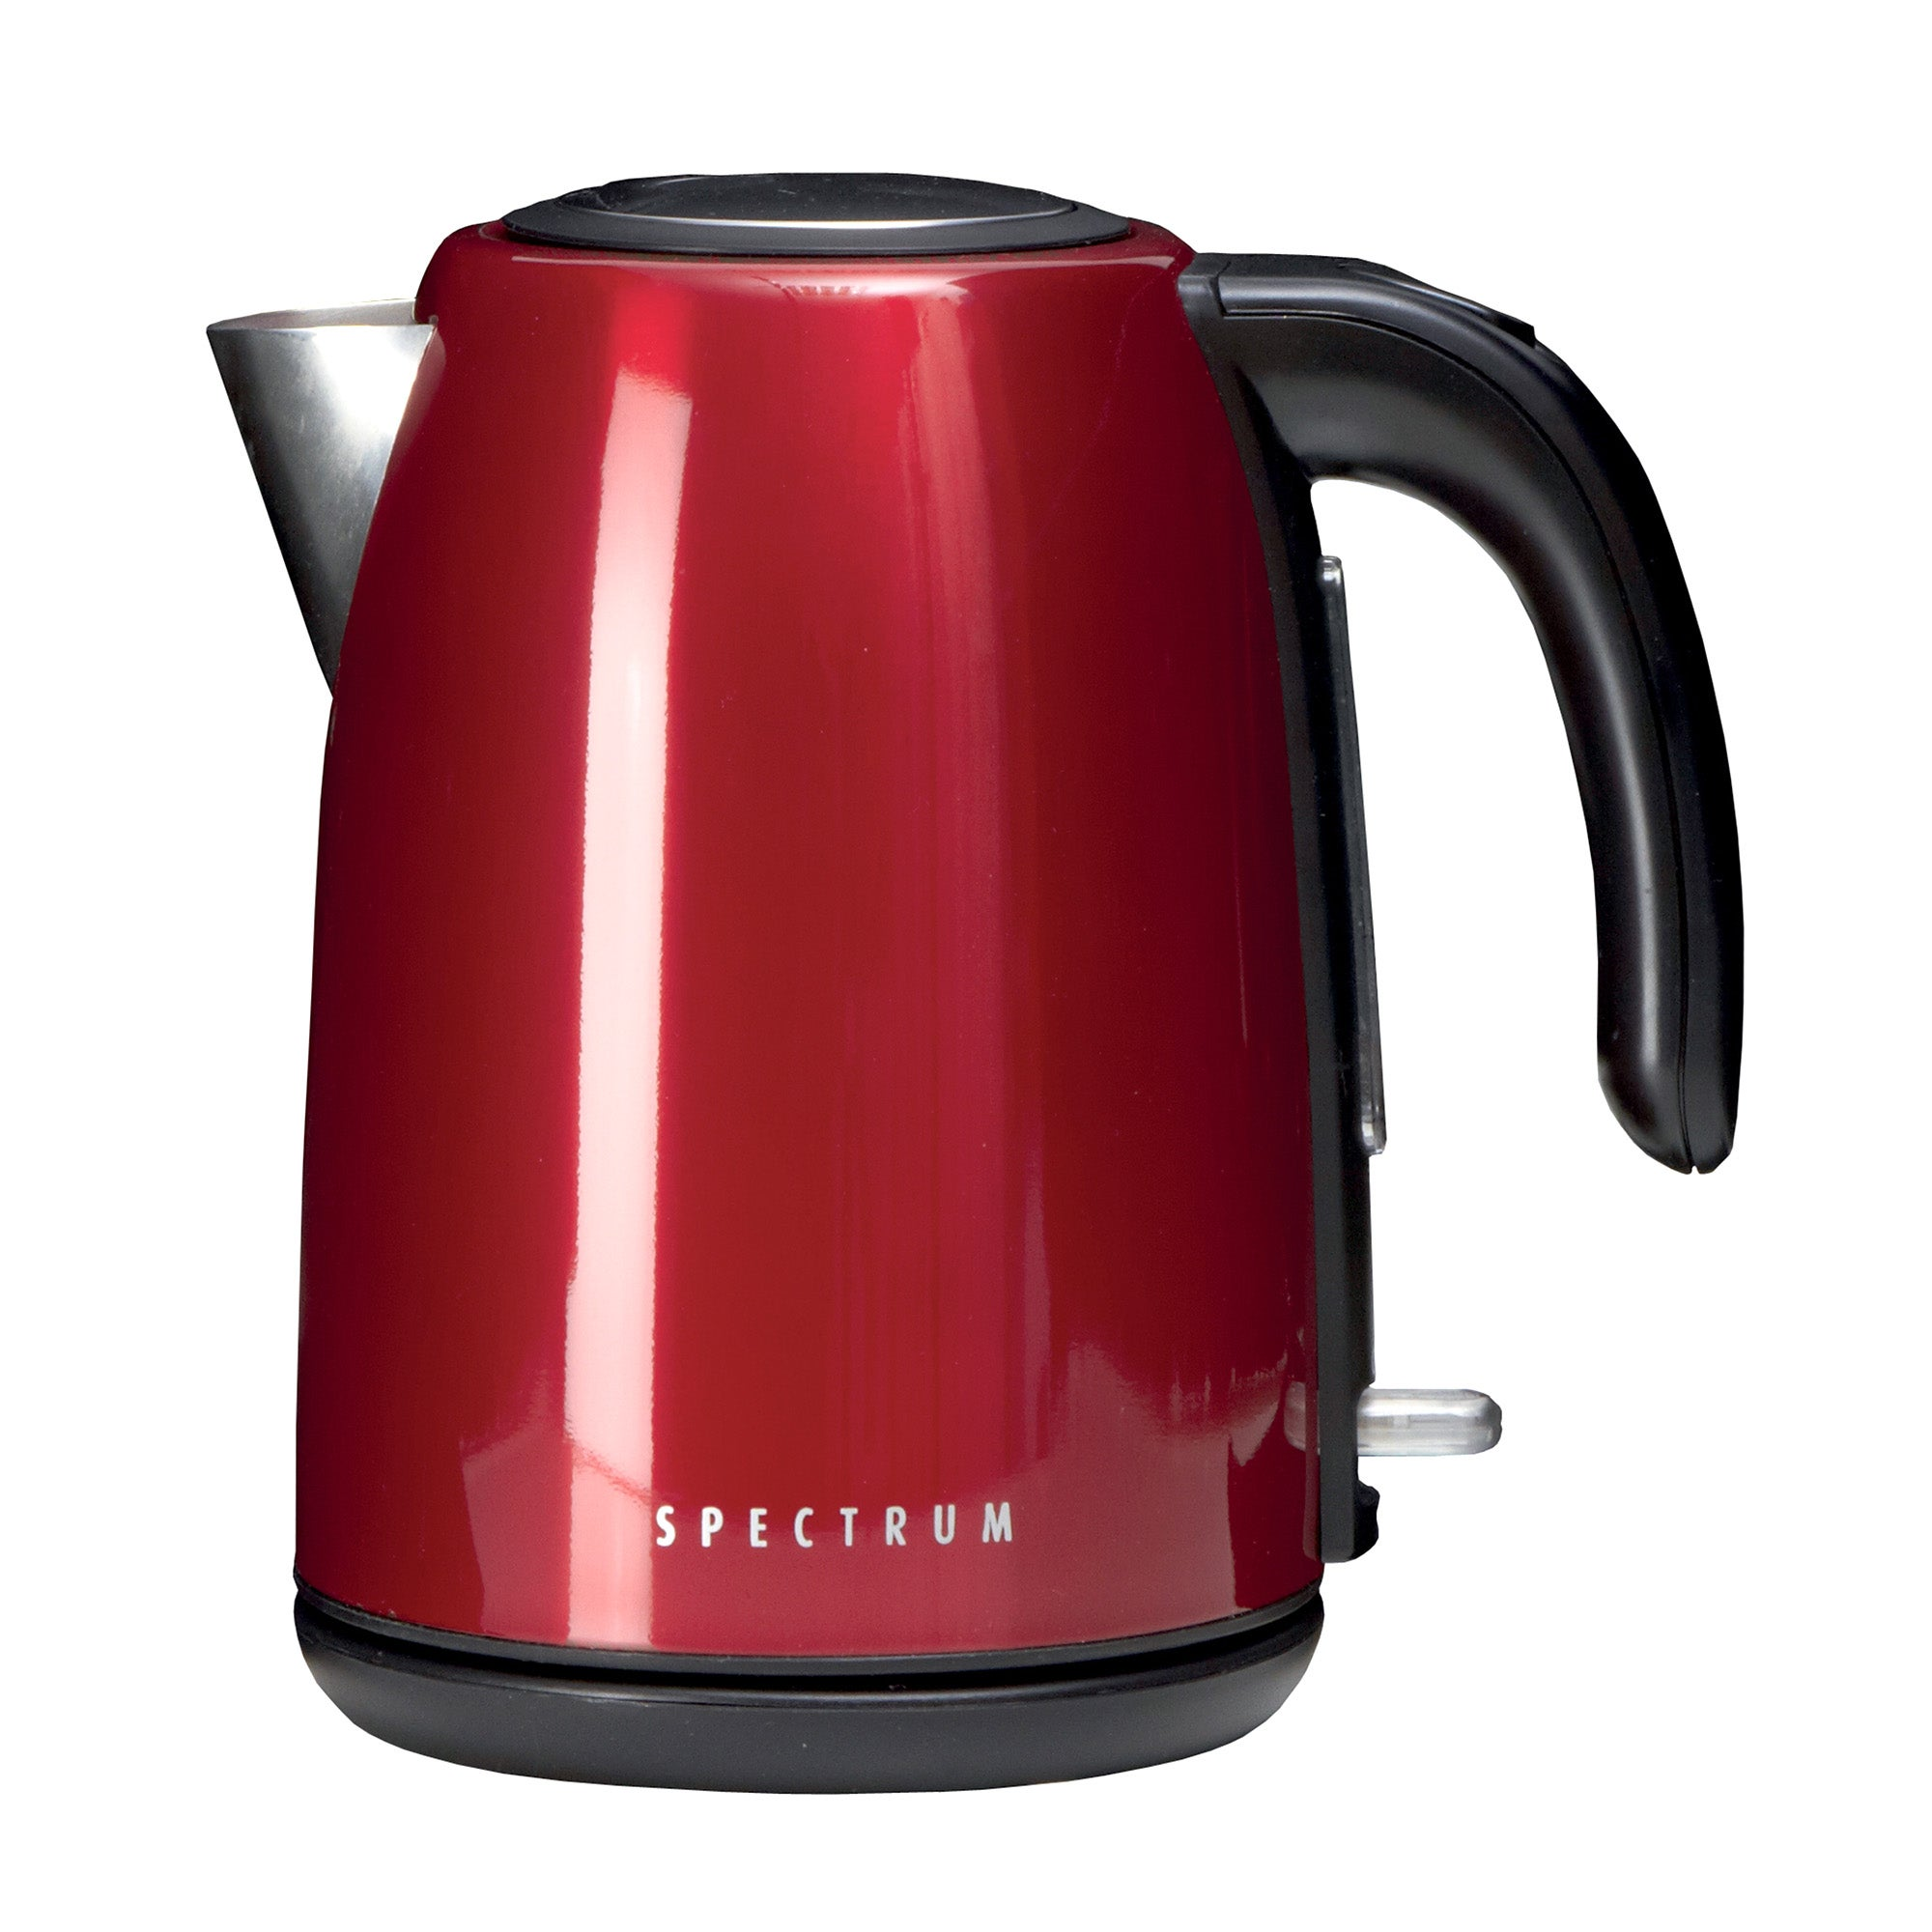 Spectrum 1.7L Red Rapid Boil Kettle Red